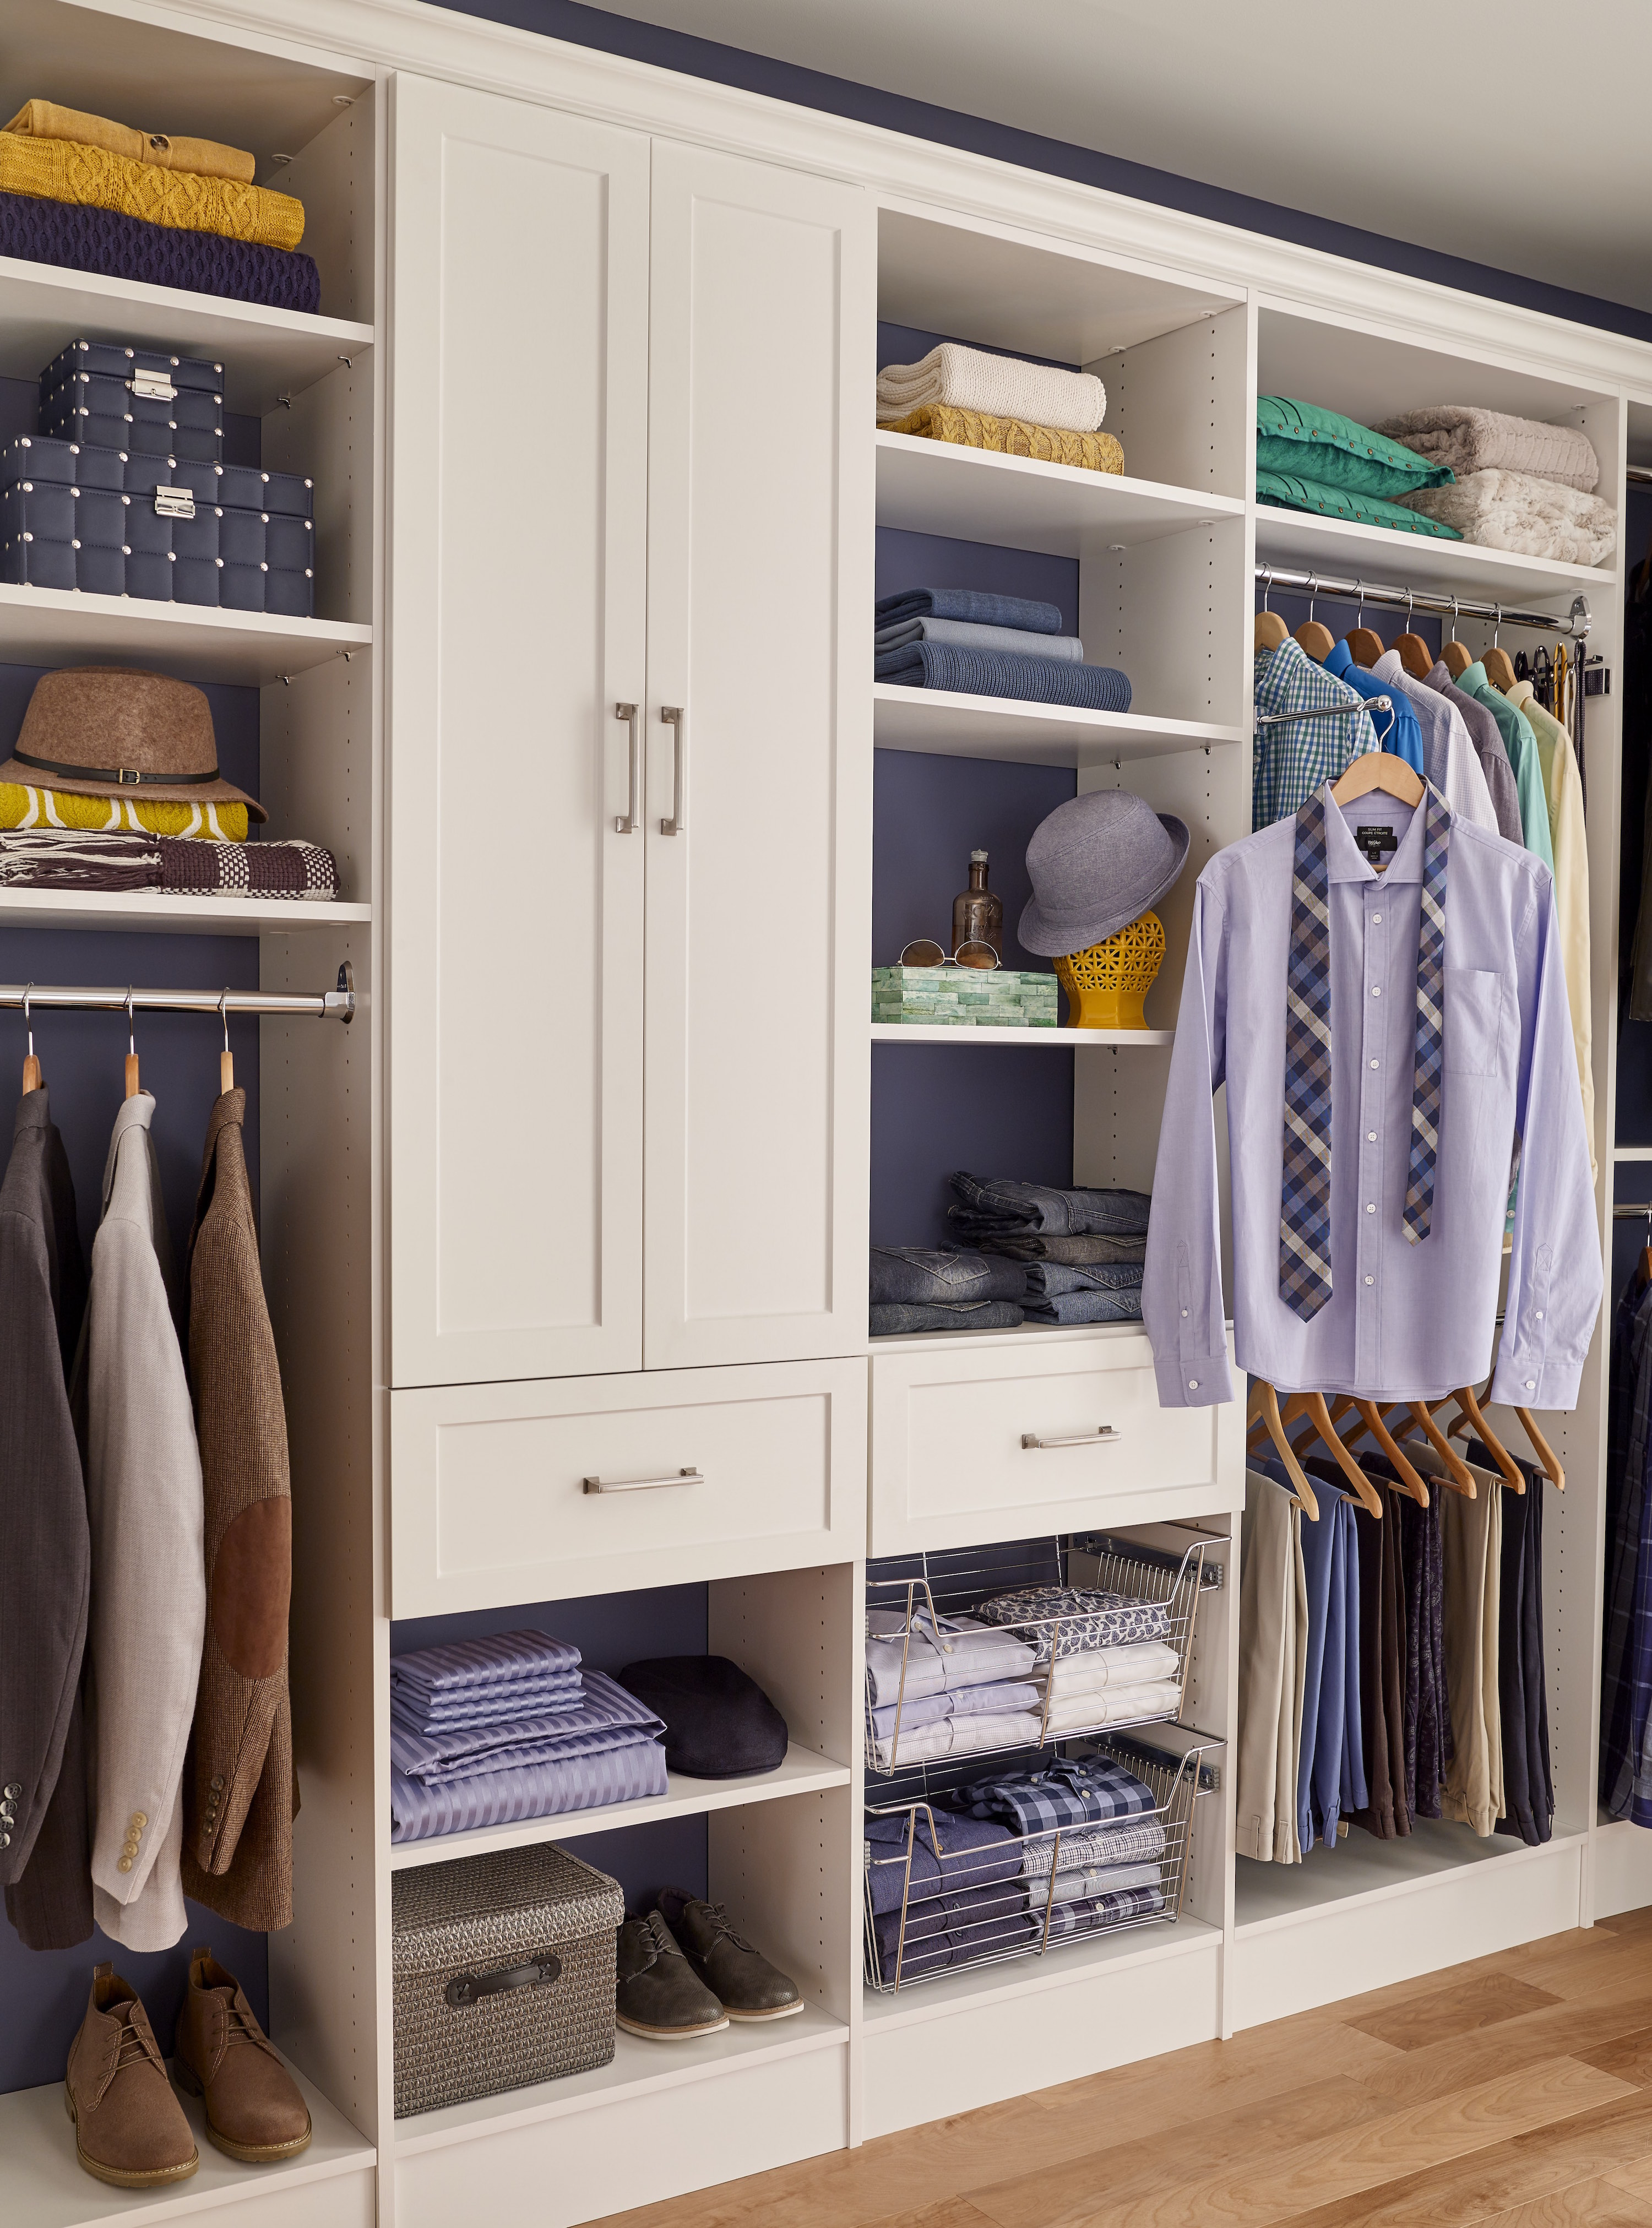 Superior ClosetMaid®, Industry Leader In Home Organization And Storage Systems Since  1965, Is A Business Of Emerson. For More Information, Visit  Closetmaidpro.com.